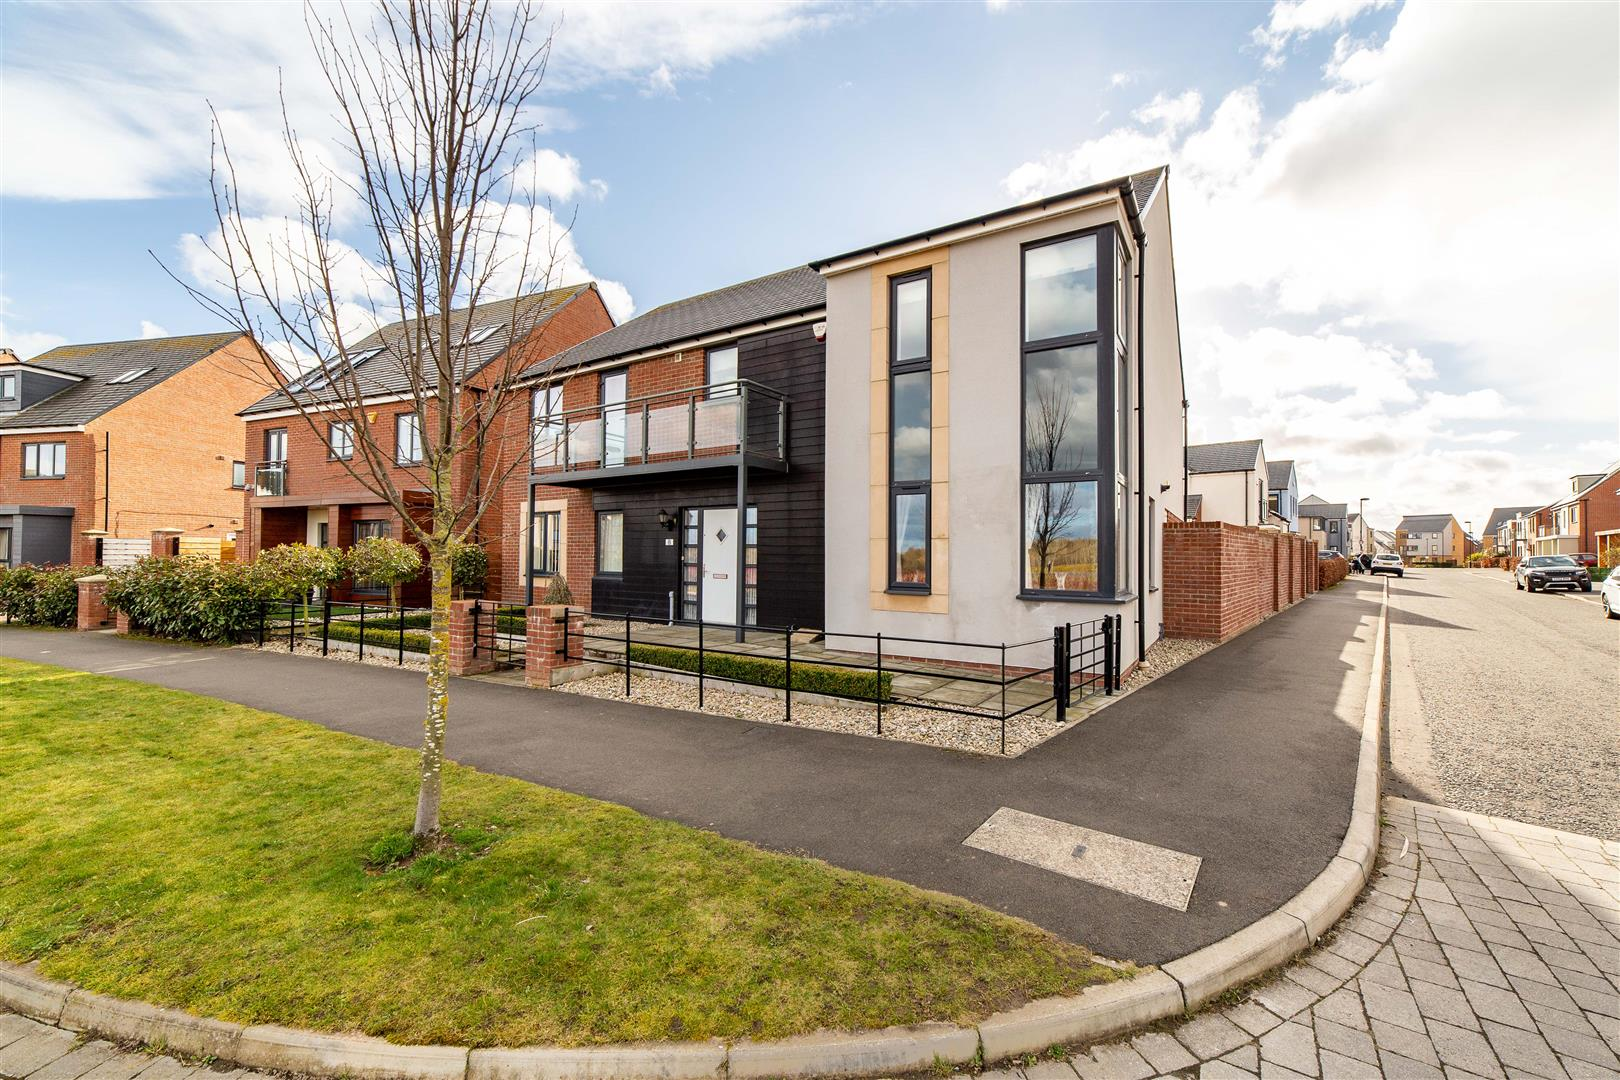 4 bed detached house for sale in Spindlestone View, Great Park, NE13